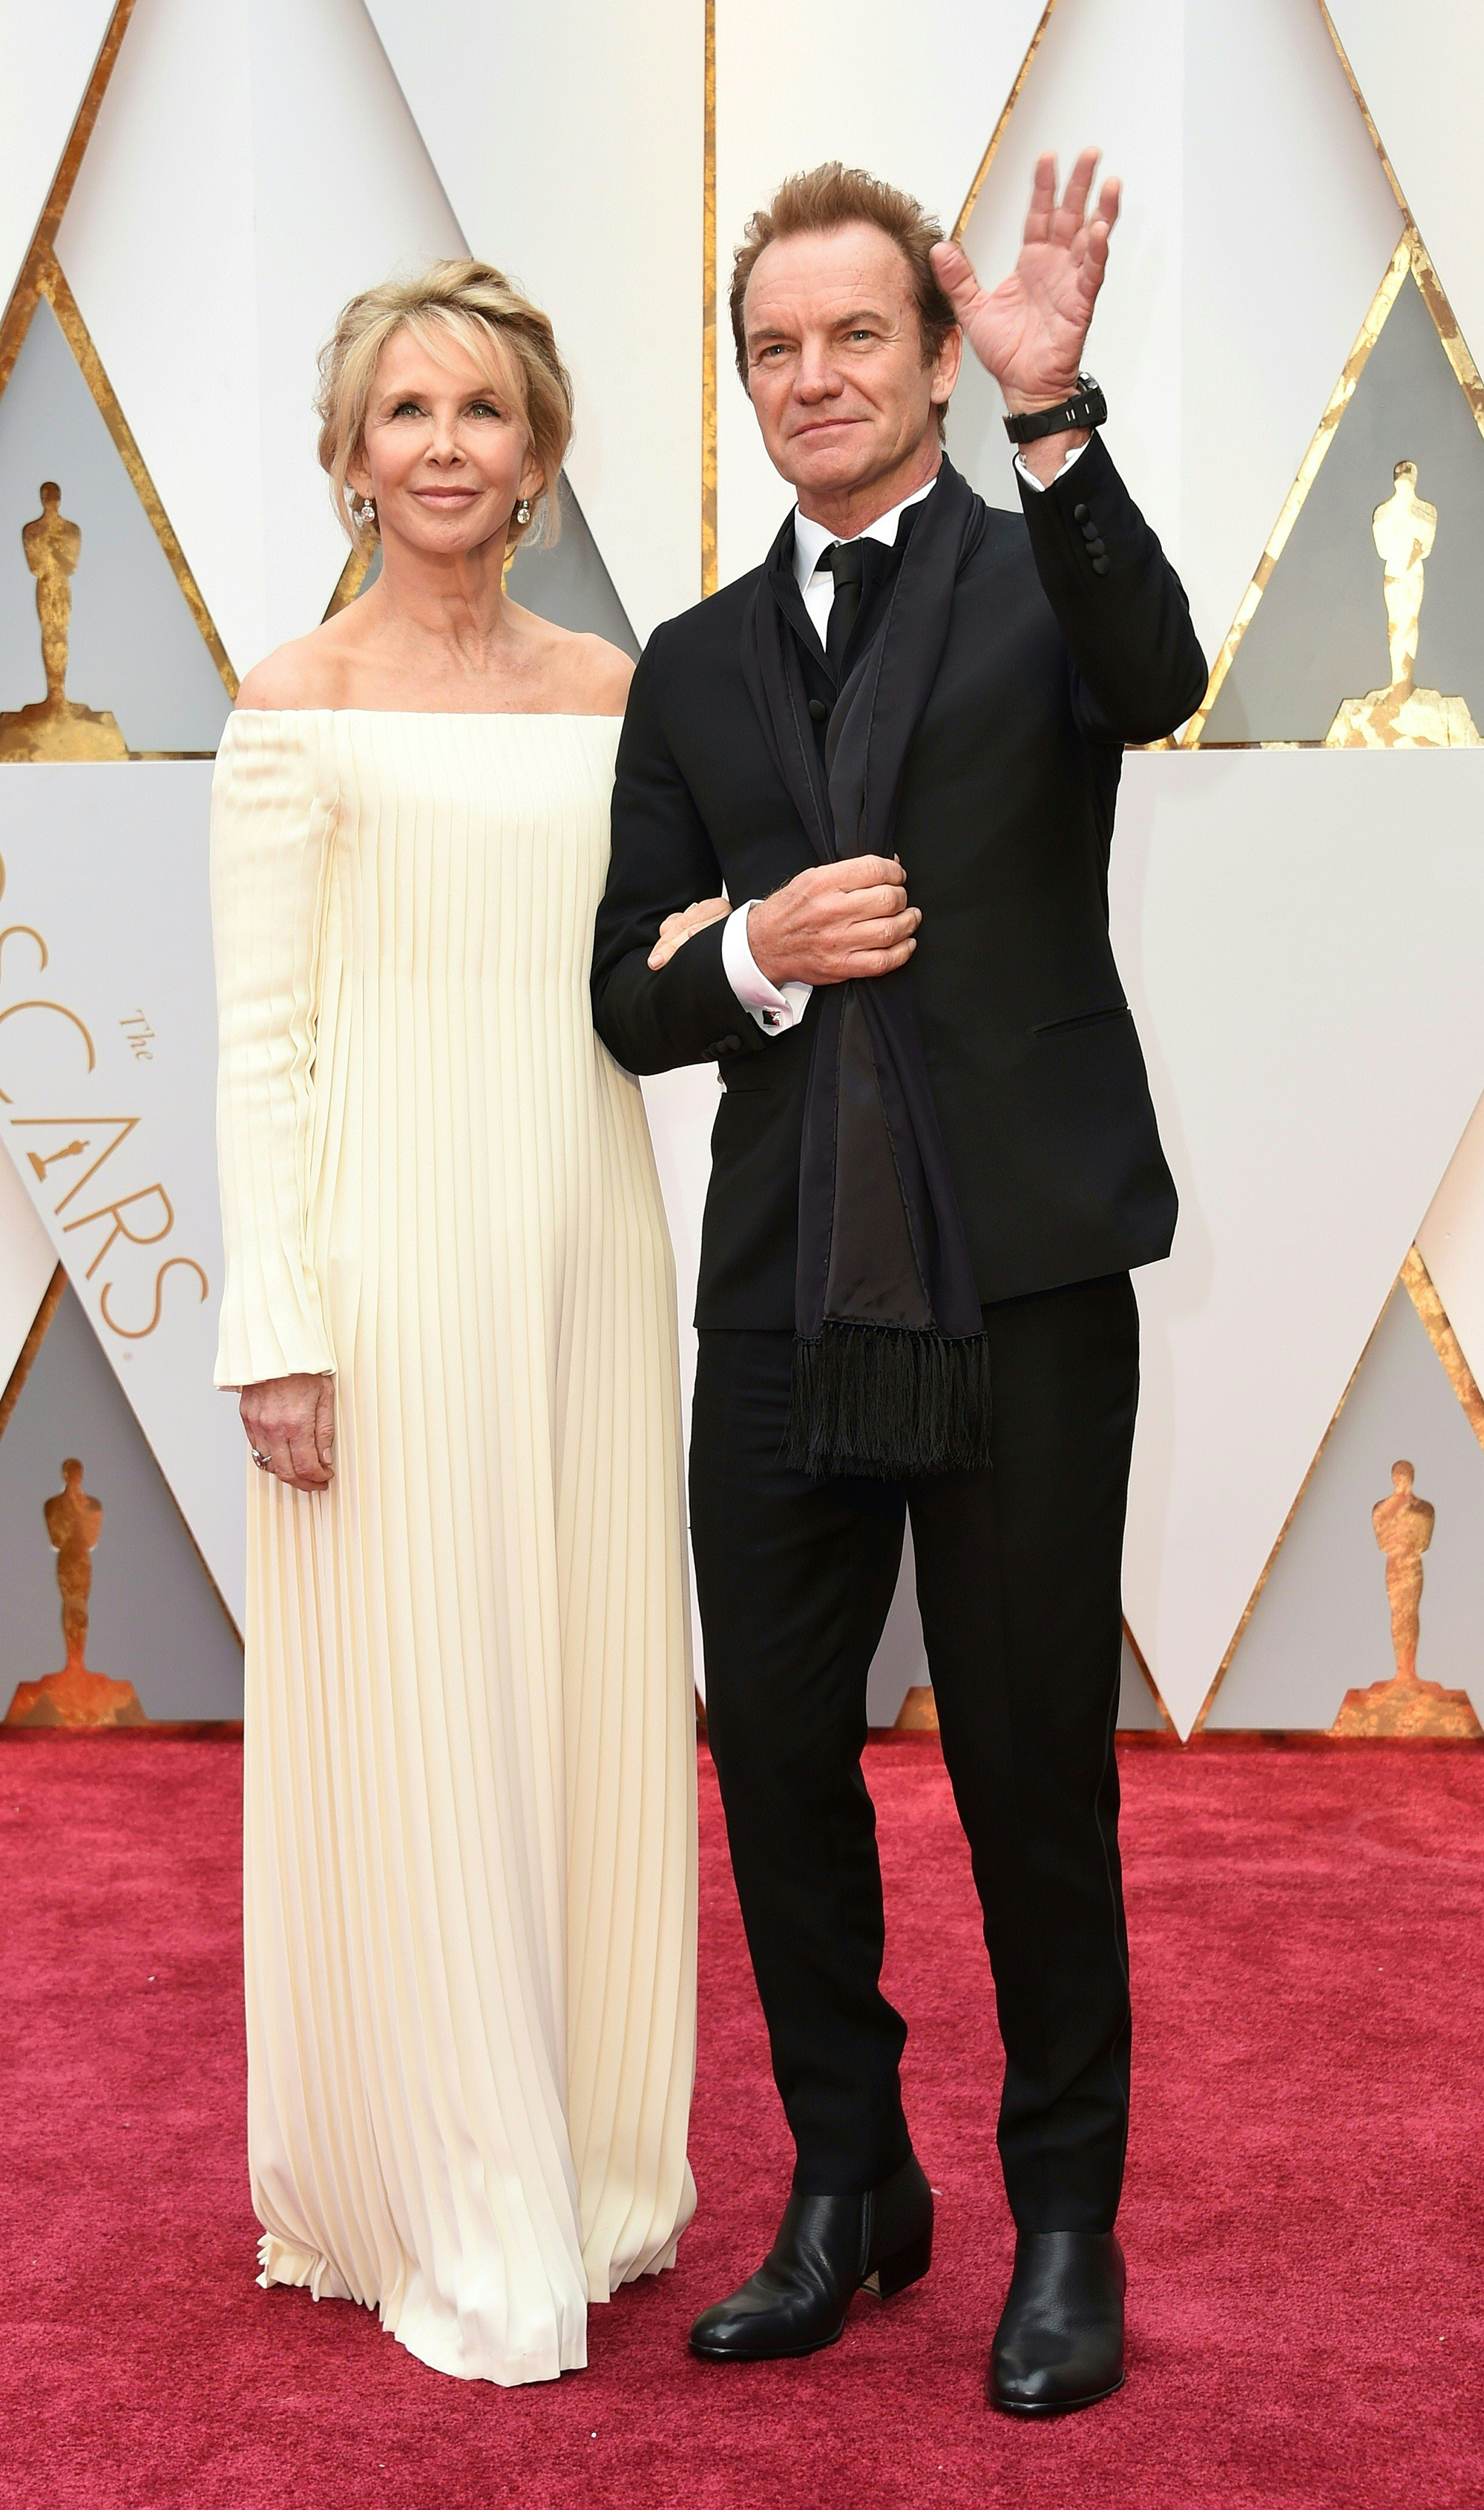 Trudie Styler and Sting on the red carpet for the 89th Oscars, on Feb. 26, 2017 in Hollywood, Calif.